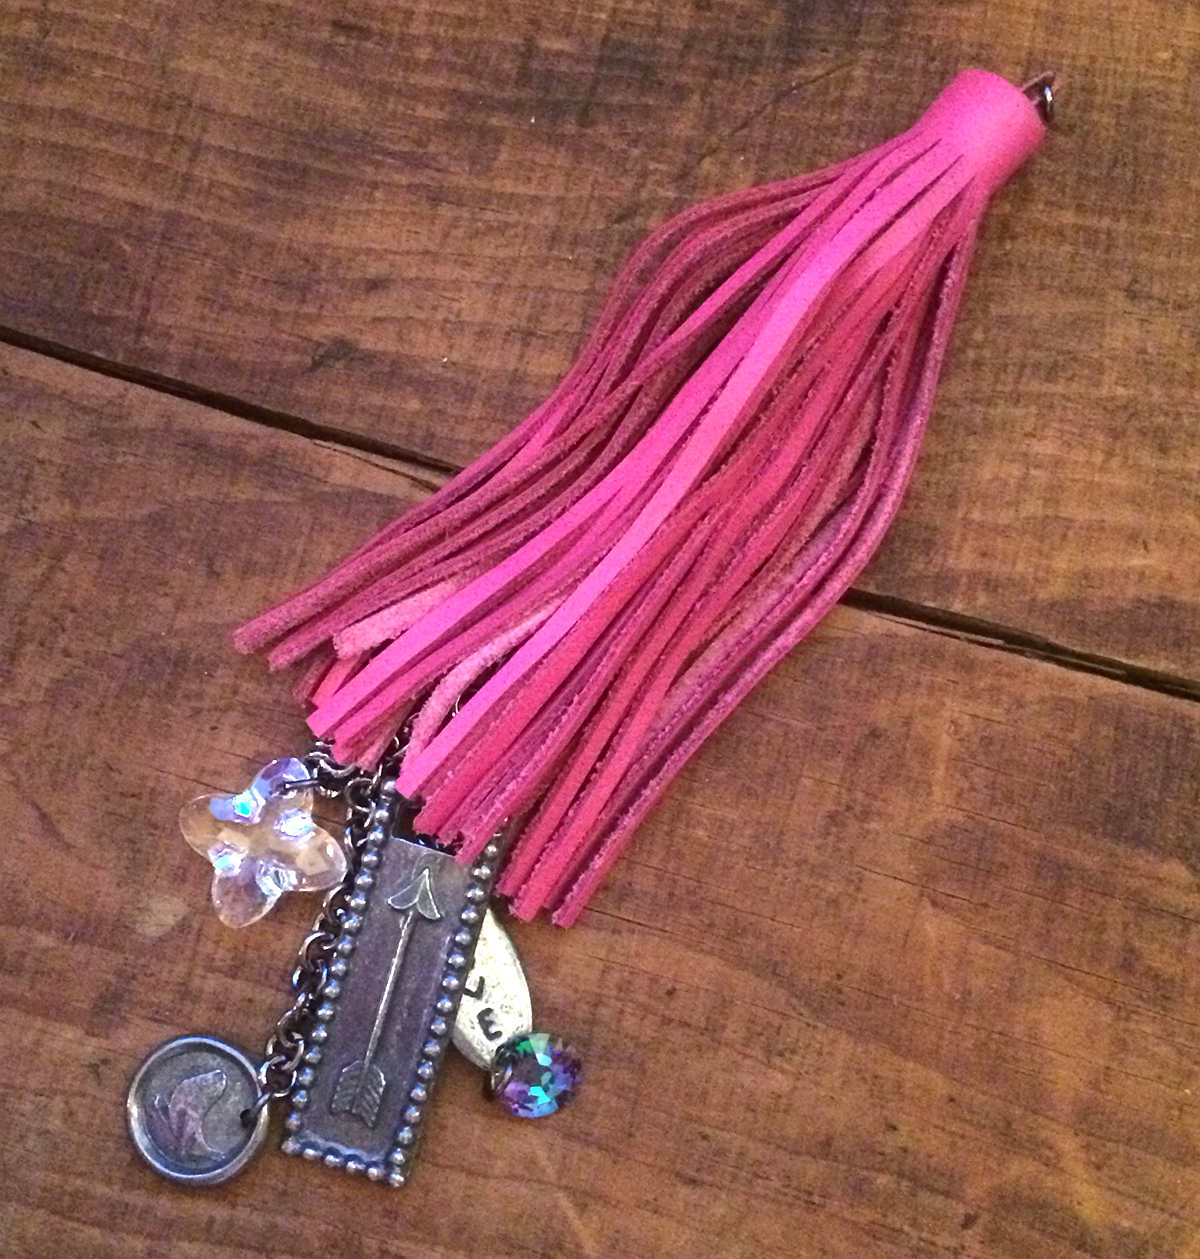 Mixed Meida Jewelry Tassel Project by Tammy Honaman 10 Favorite Pink Jewelry Projects, mixed media jewelry, beadweaving, beading, tassels